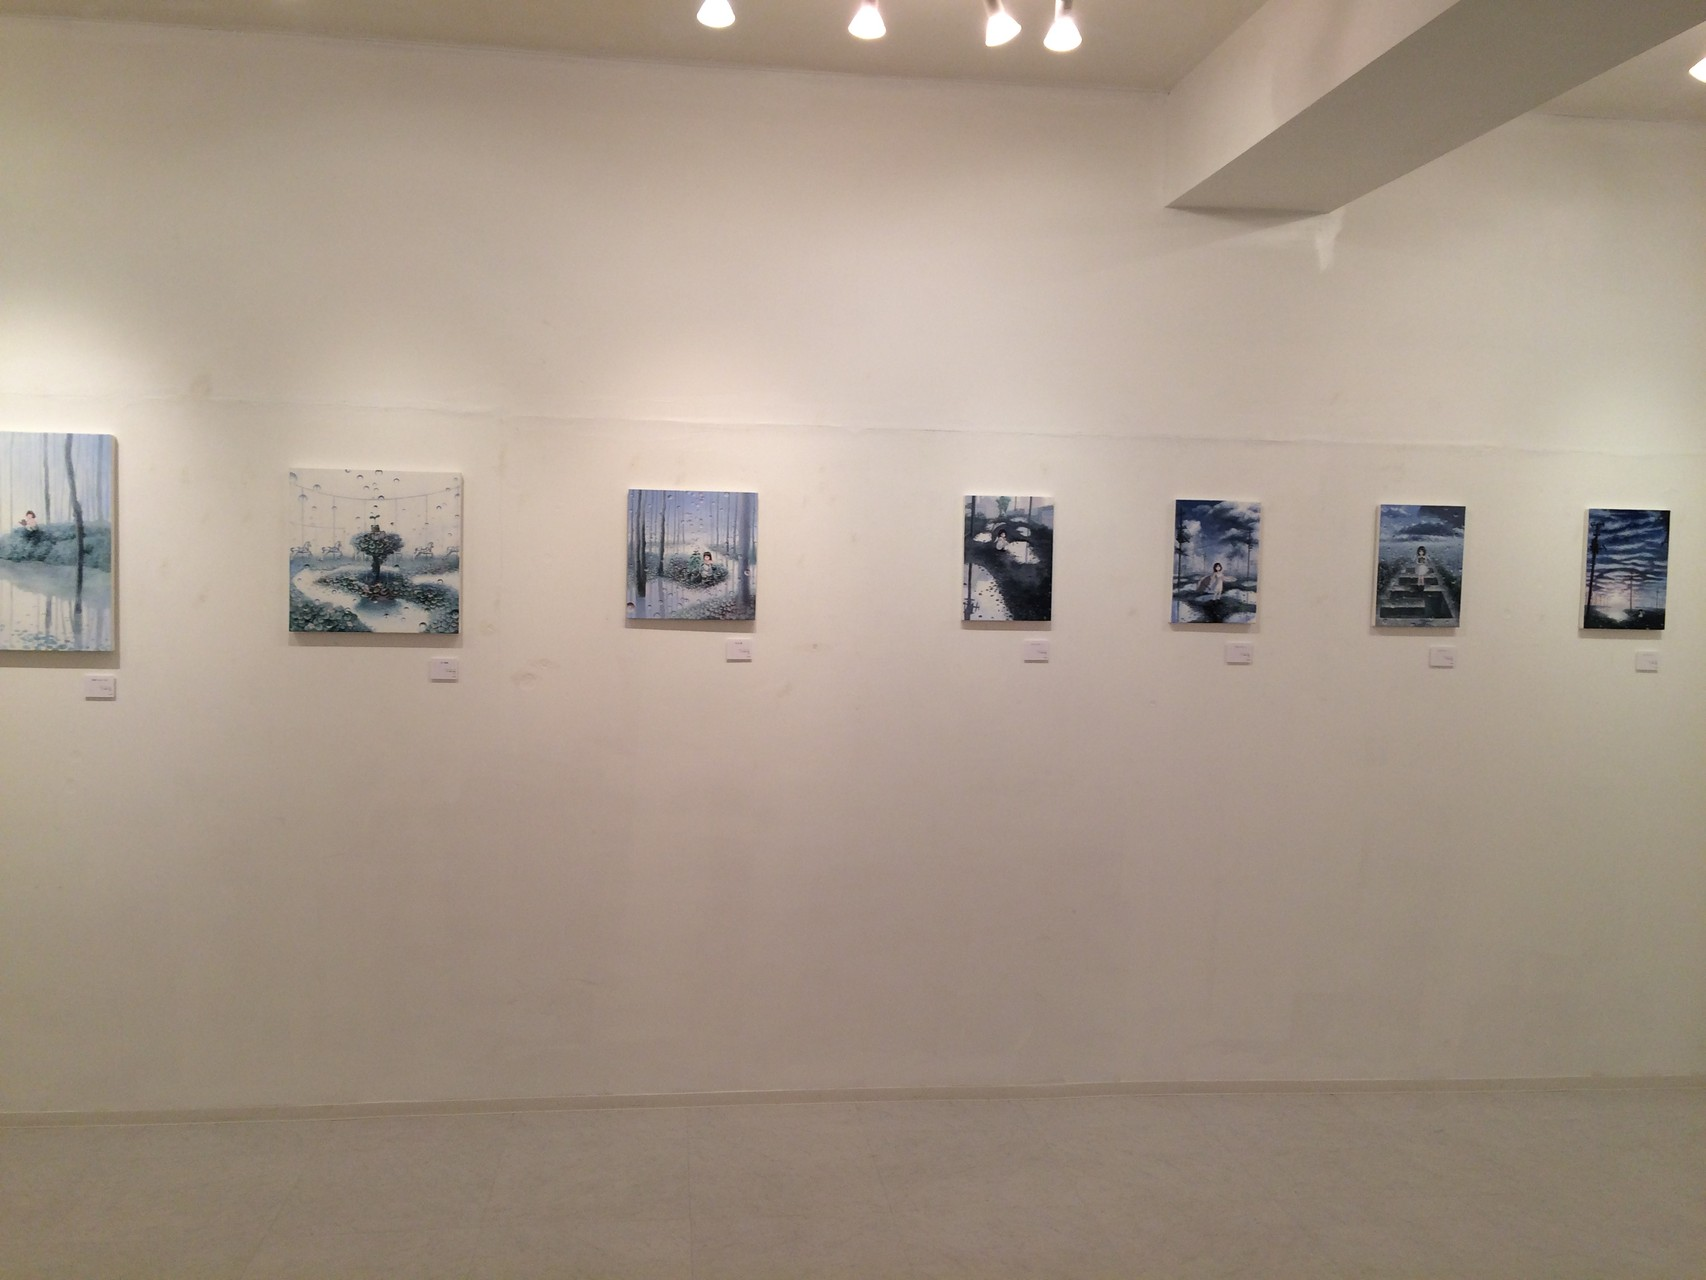 「ART POINT Selection V」@gallery art point 2015.10.26~10/31